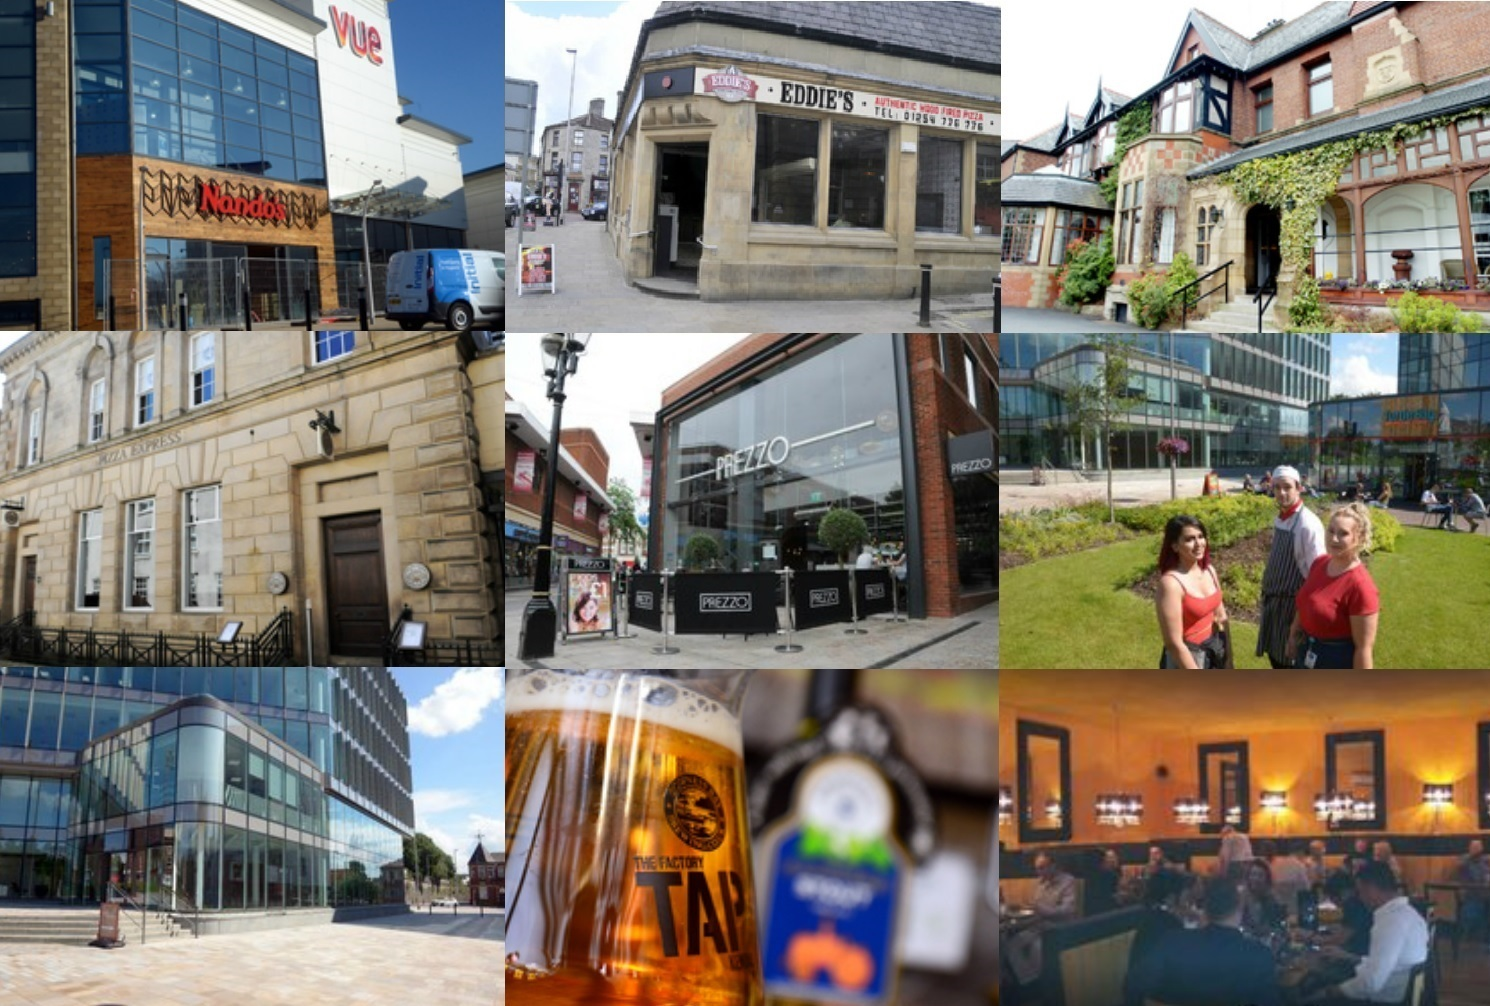 Which restaurants would you like to see open in Blackburn?